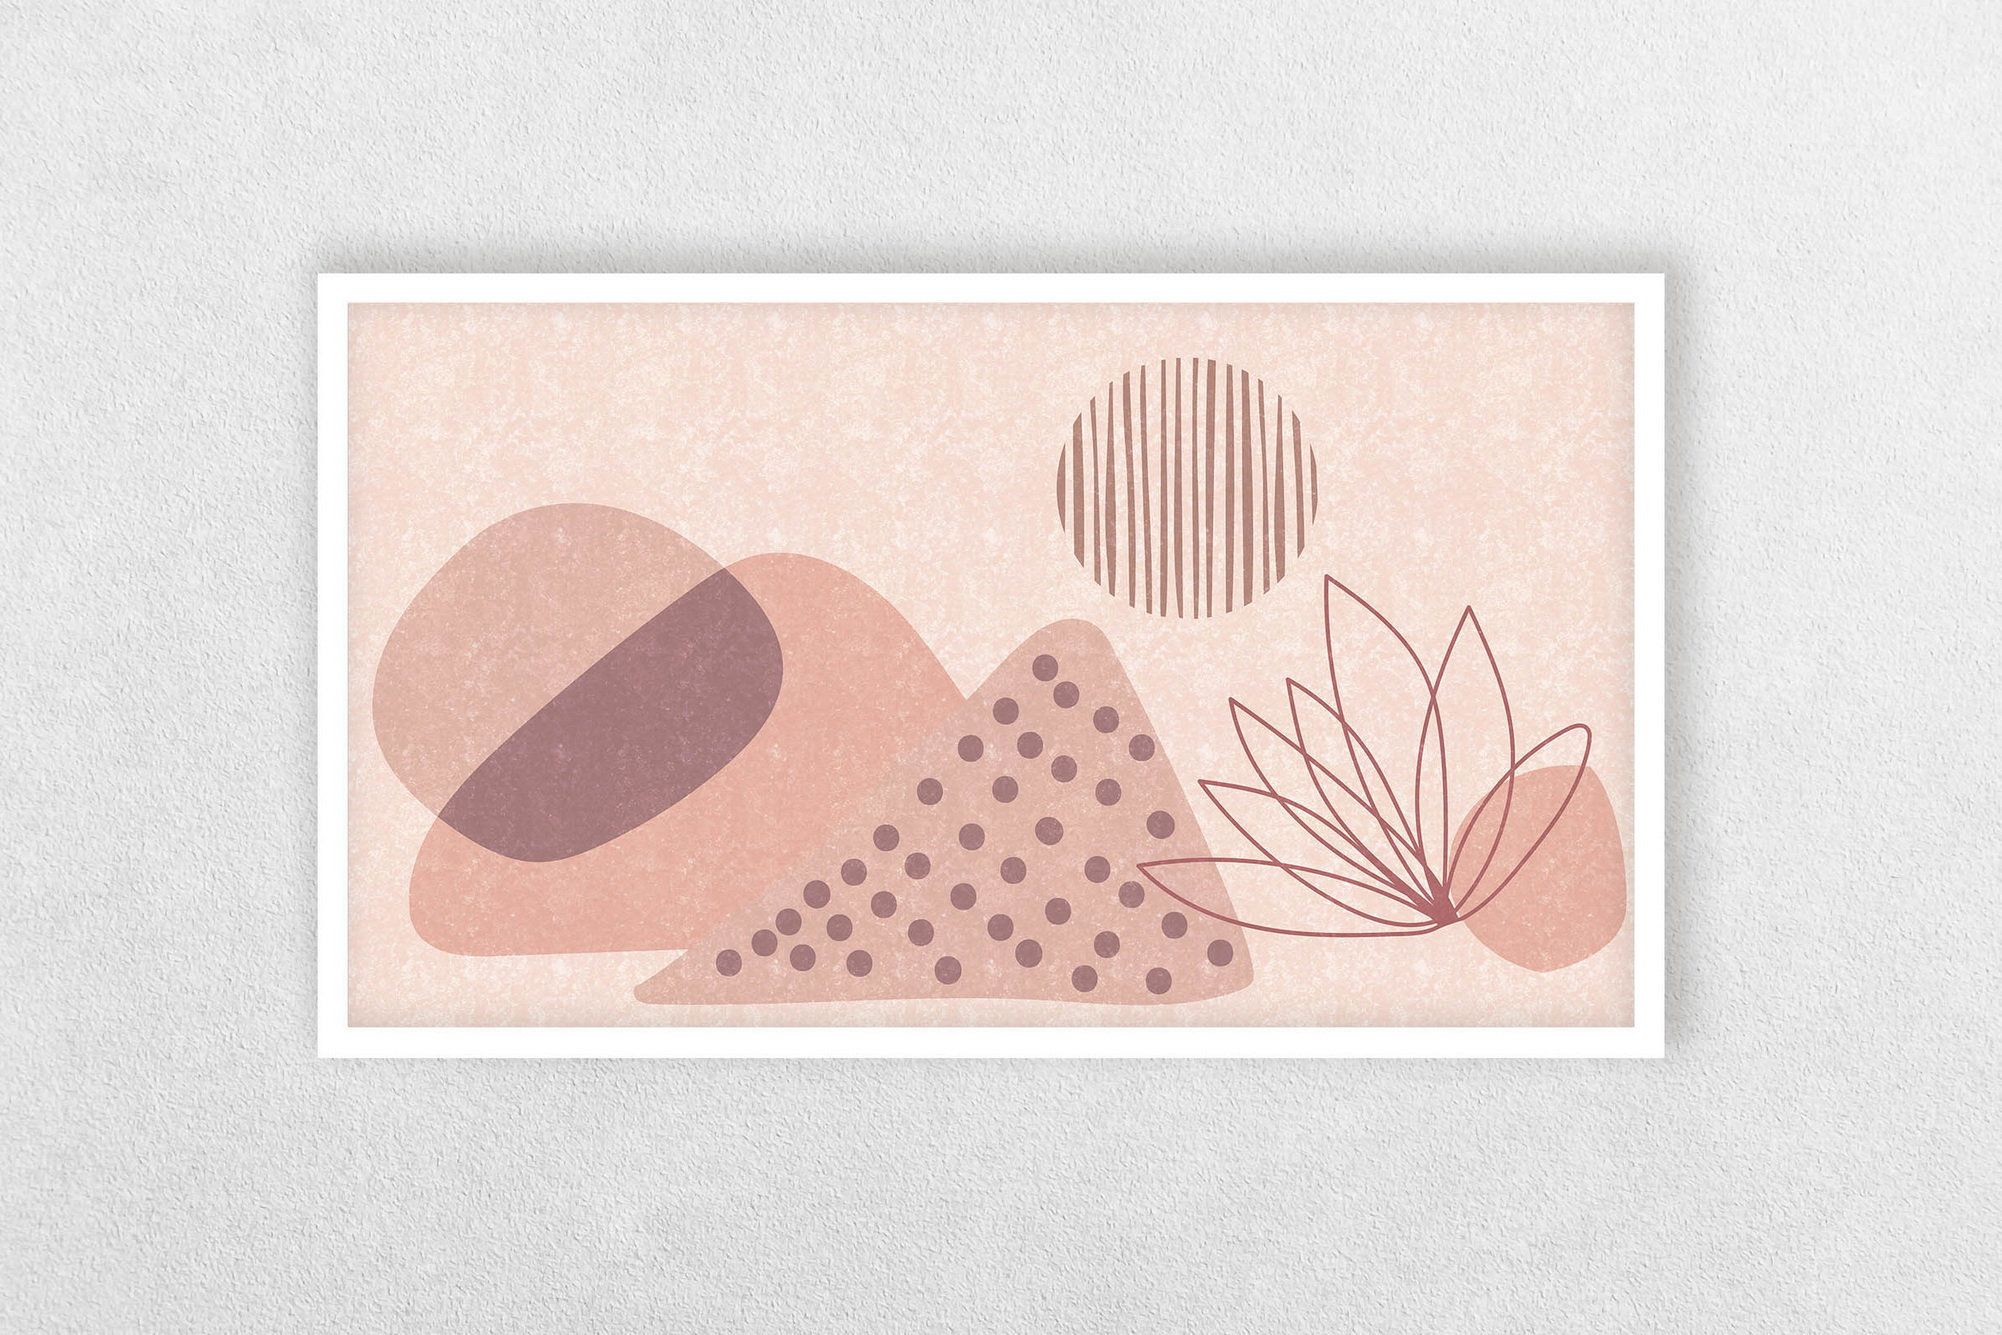 Frame TV Art Abstract Neutral Tone Blush Pink Art for Samsung Frame TV Modern Abstract Frame TV Art Geometric Contemporary Digital Download